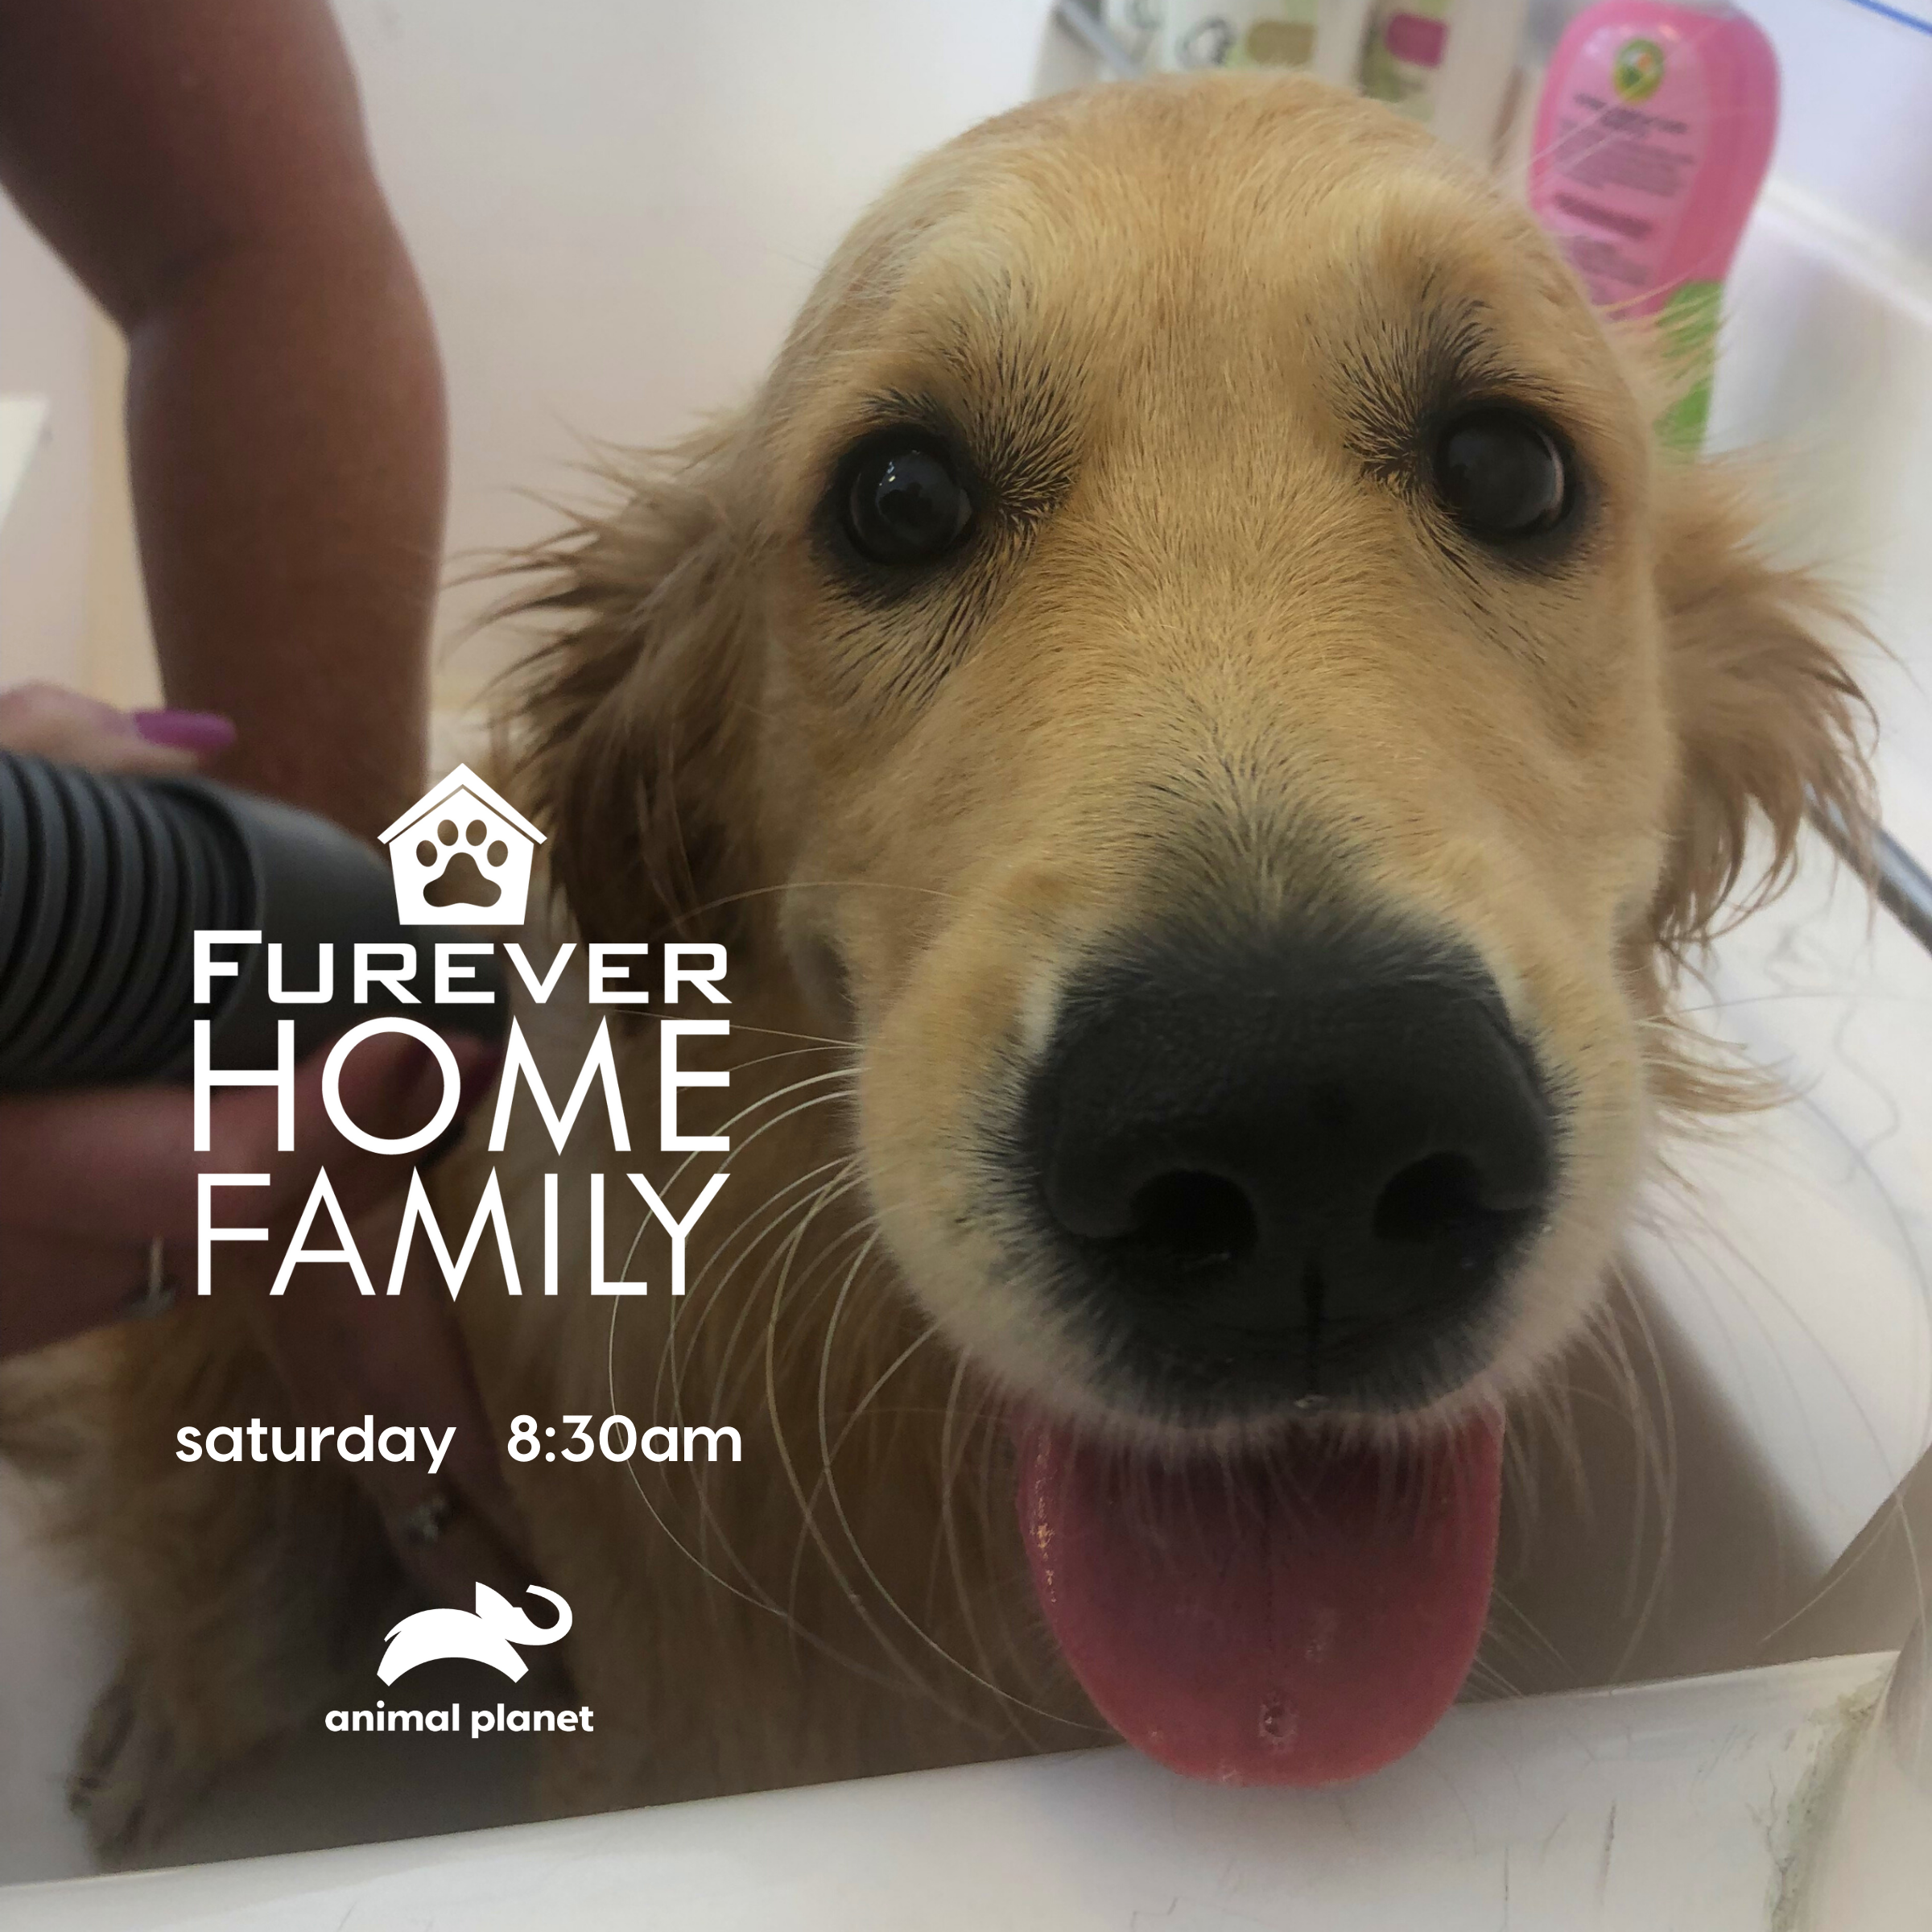 Furever Home Family In 2020 Animal Planet Pet Parent Animals